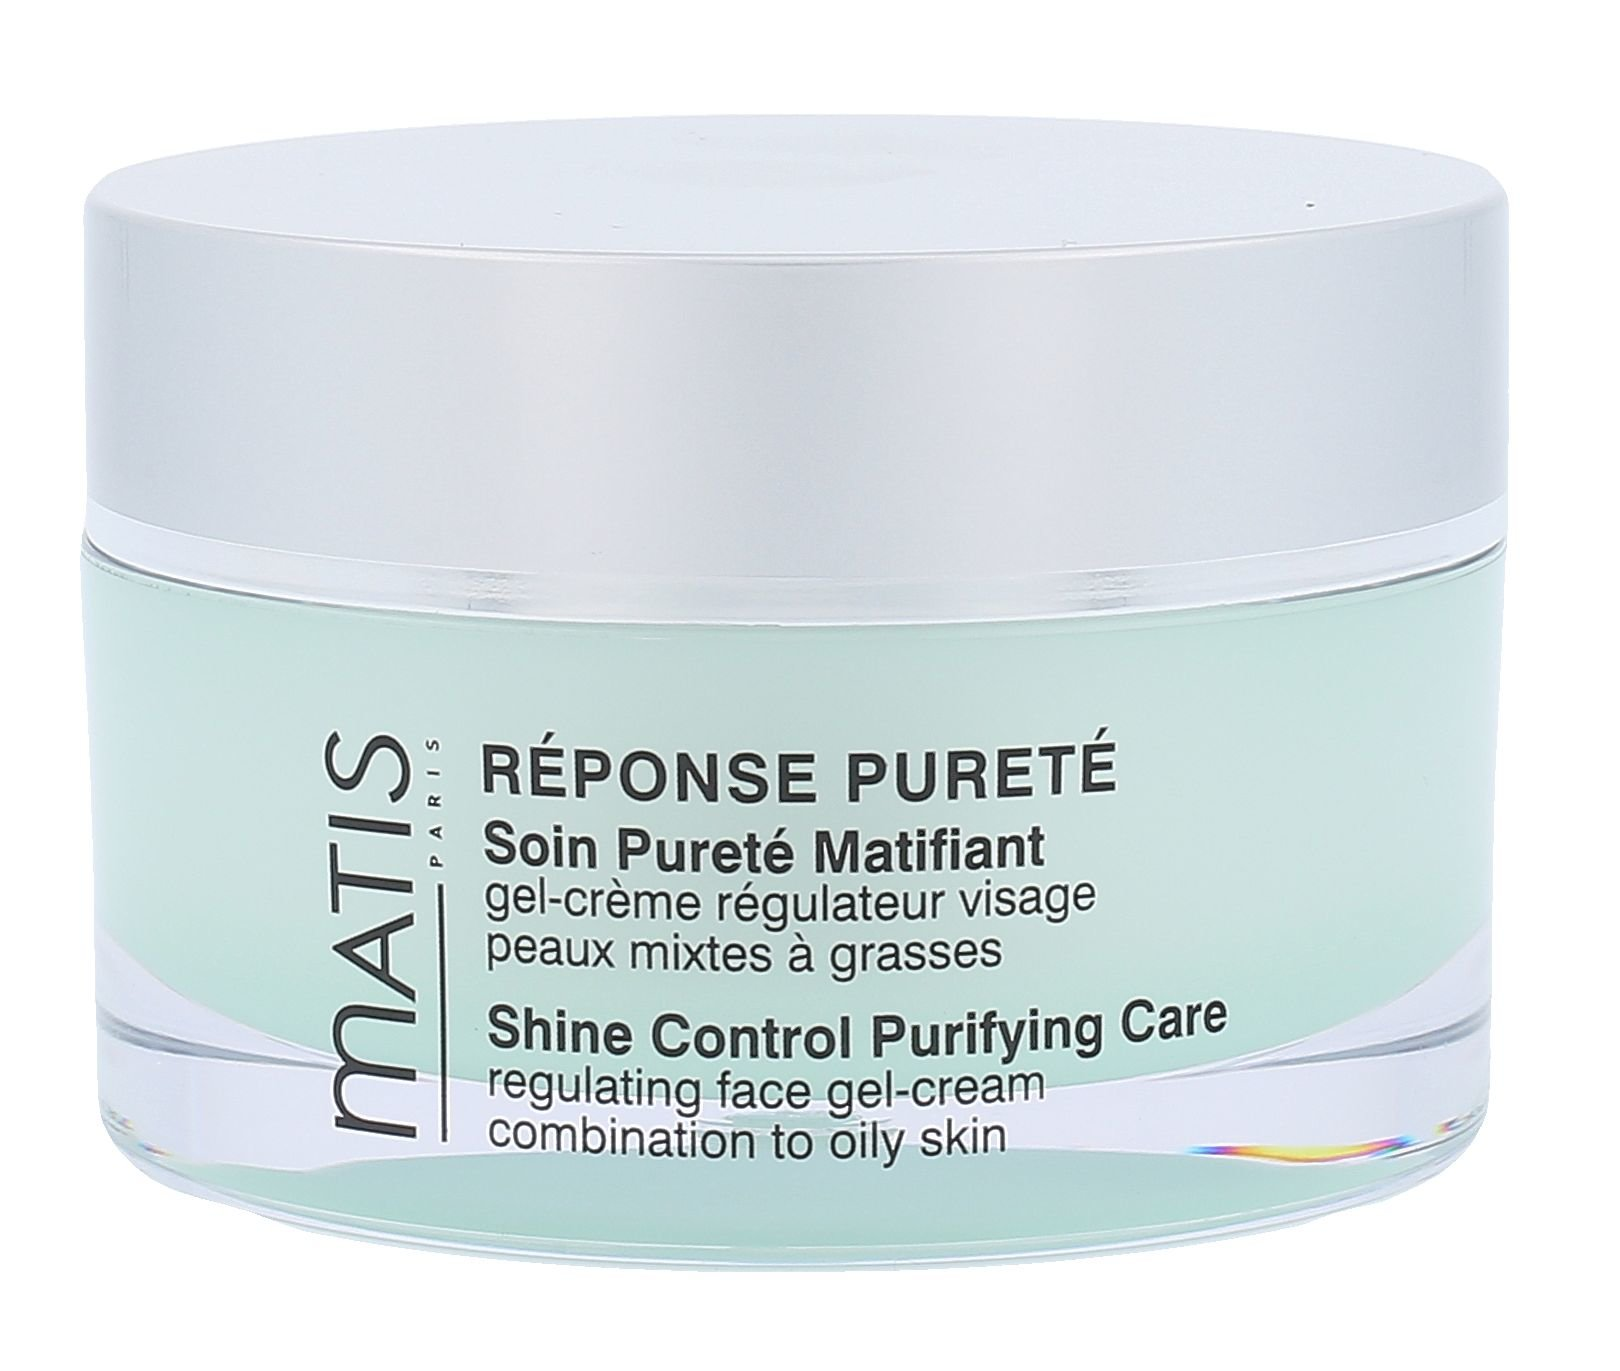 Matis Réponse Pureté Cosmetic 50ml  Shine Control Purifying Care